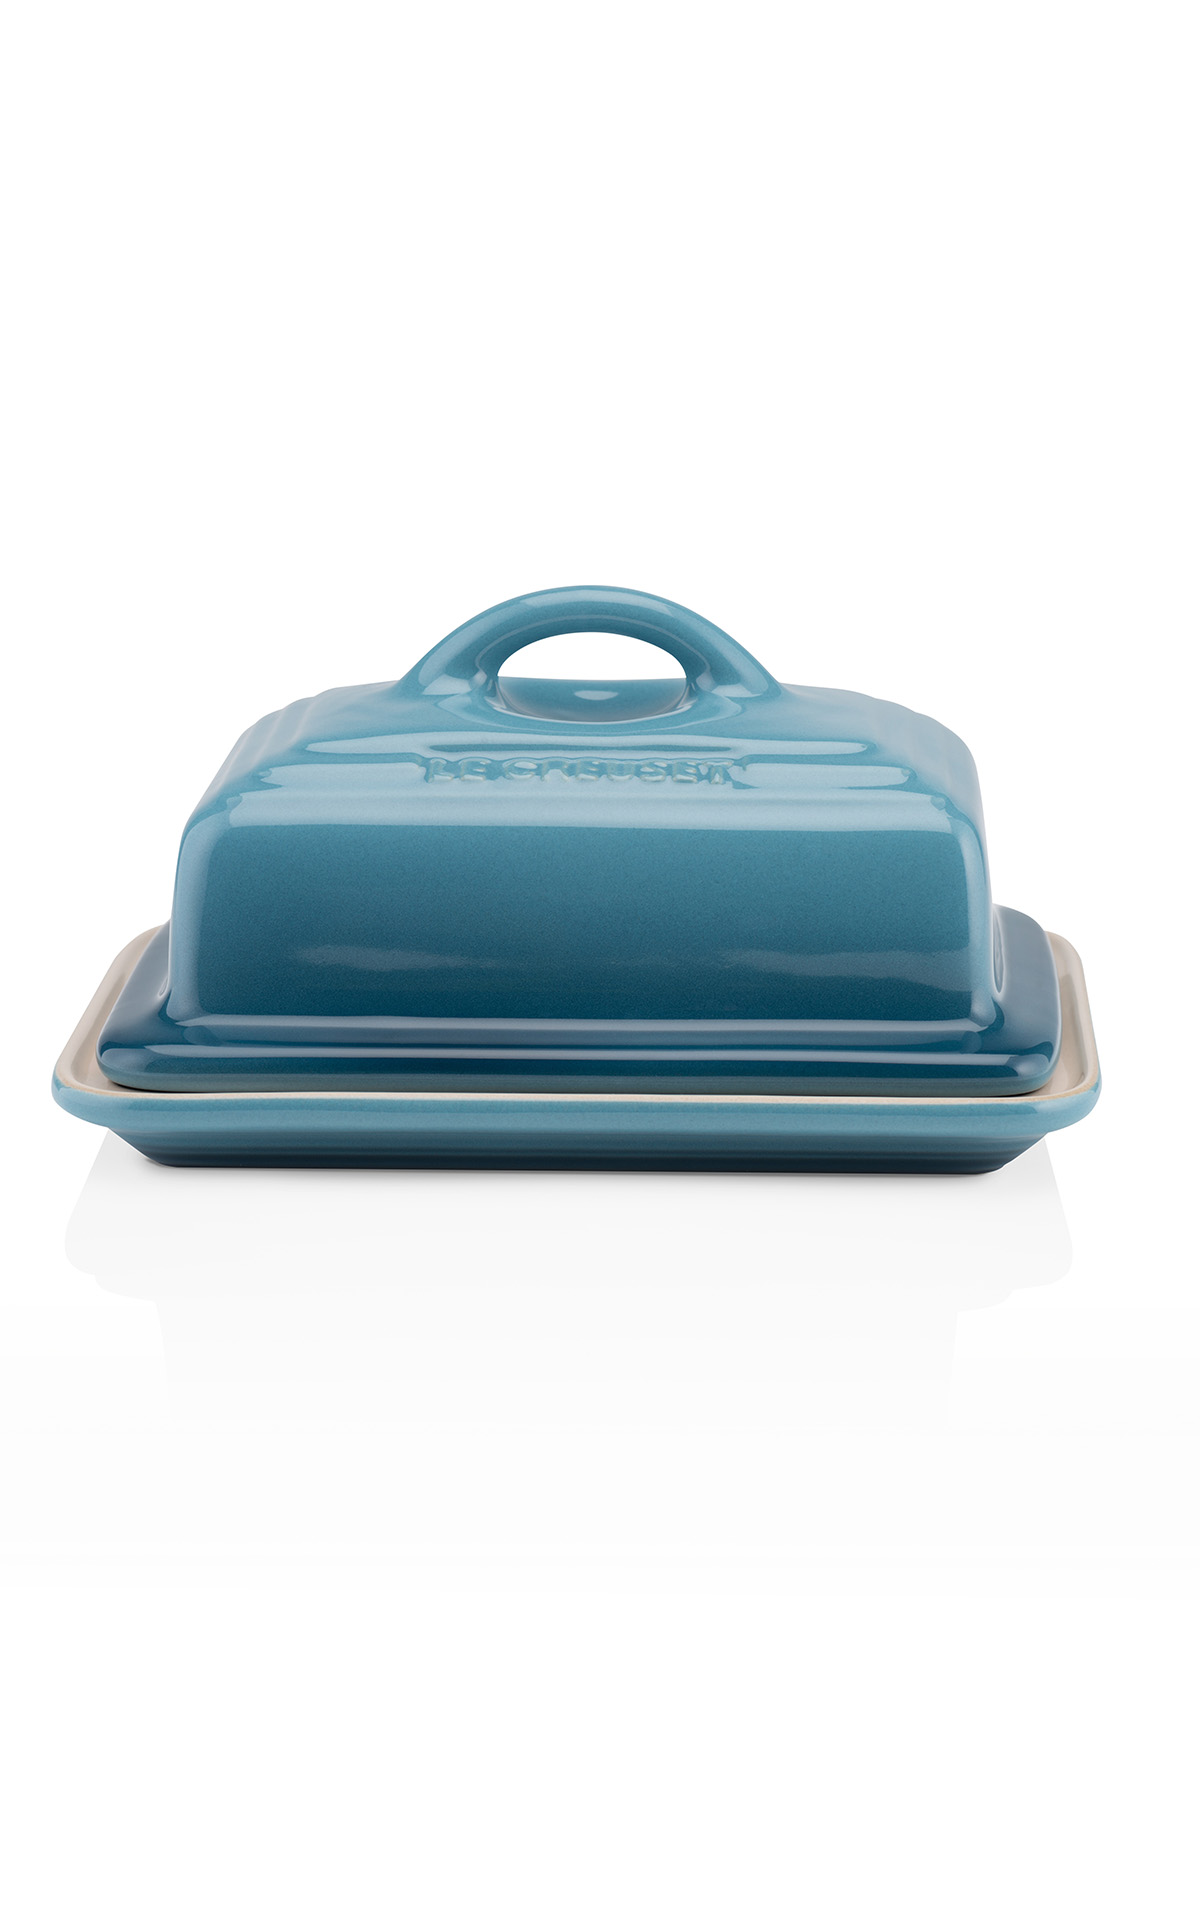 Le Creuset Butter dish marine from Bicester Village